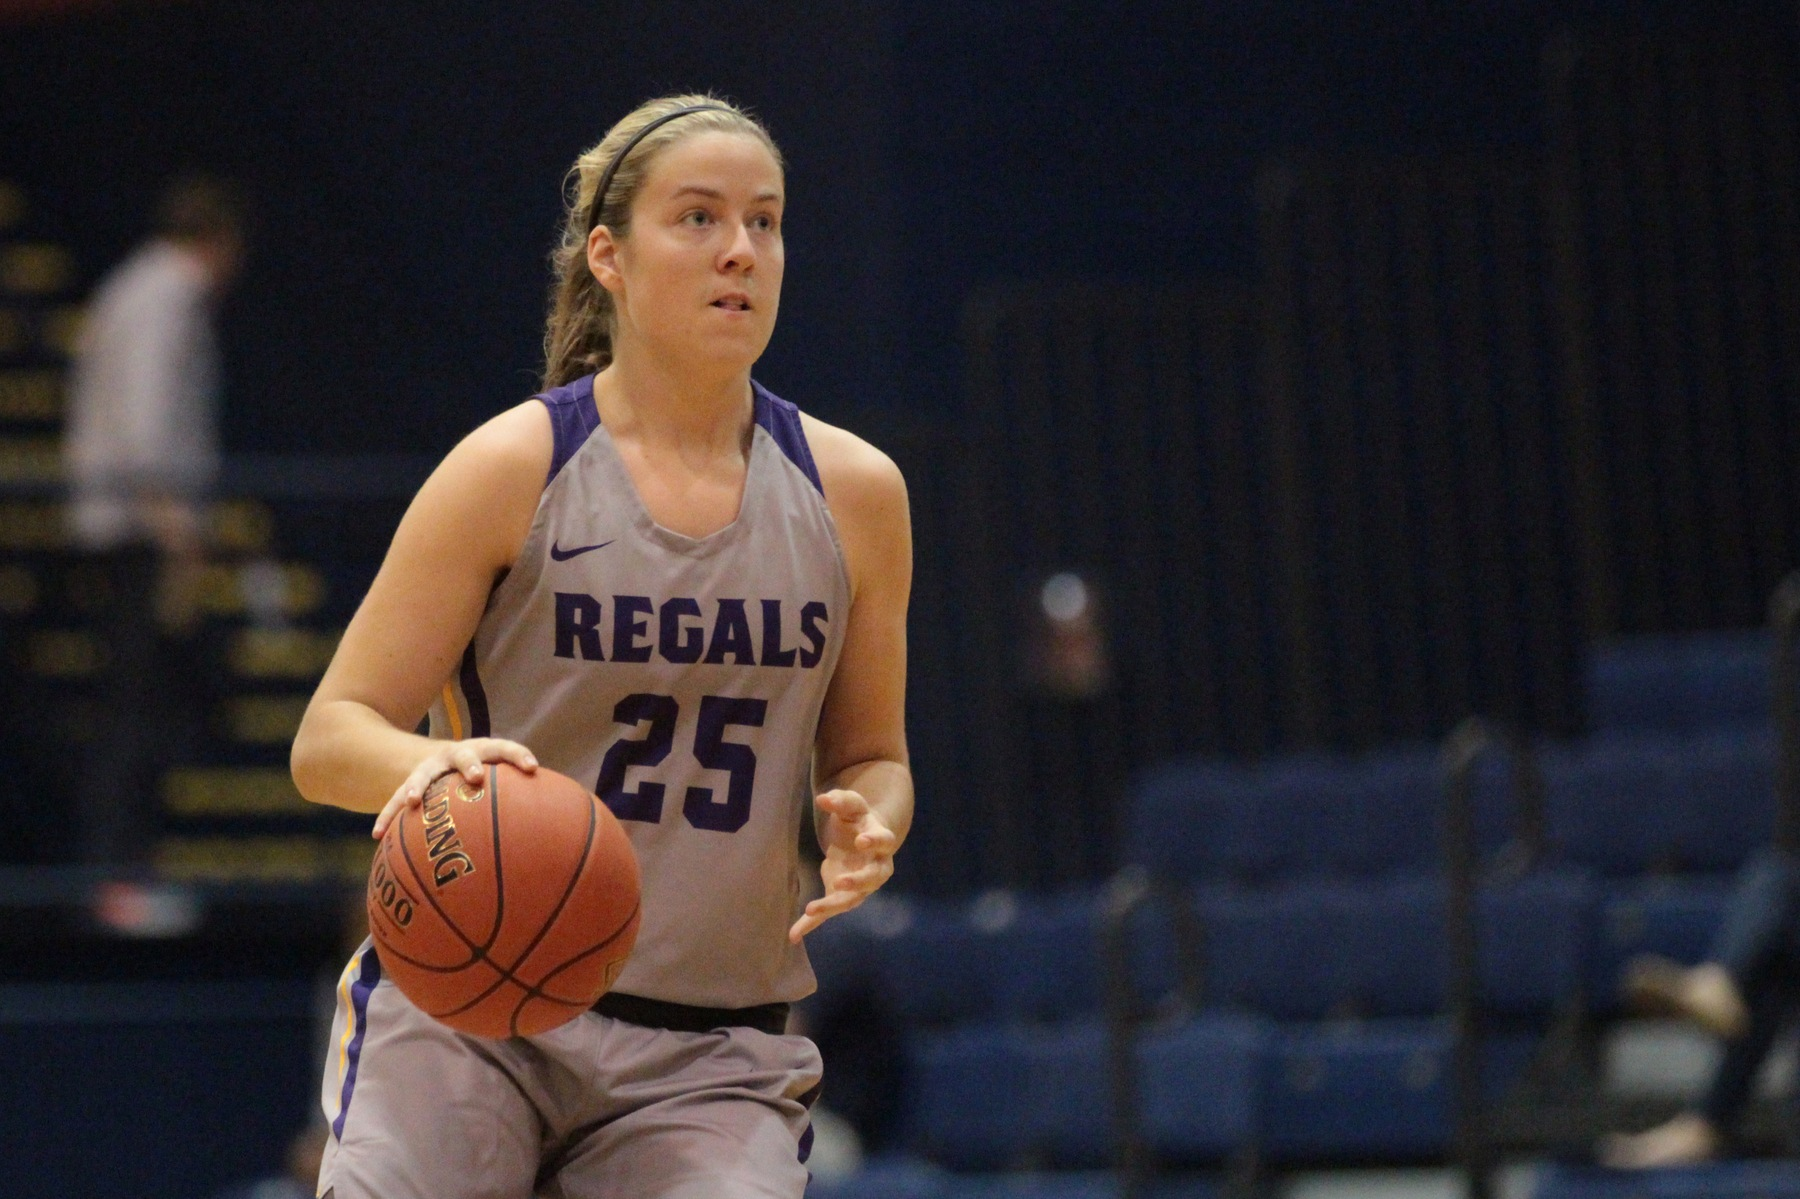 Regals Come Up Short in Rematch with Leopards